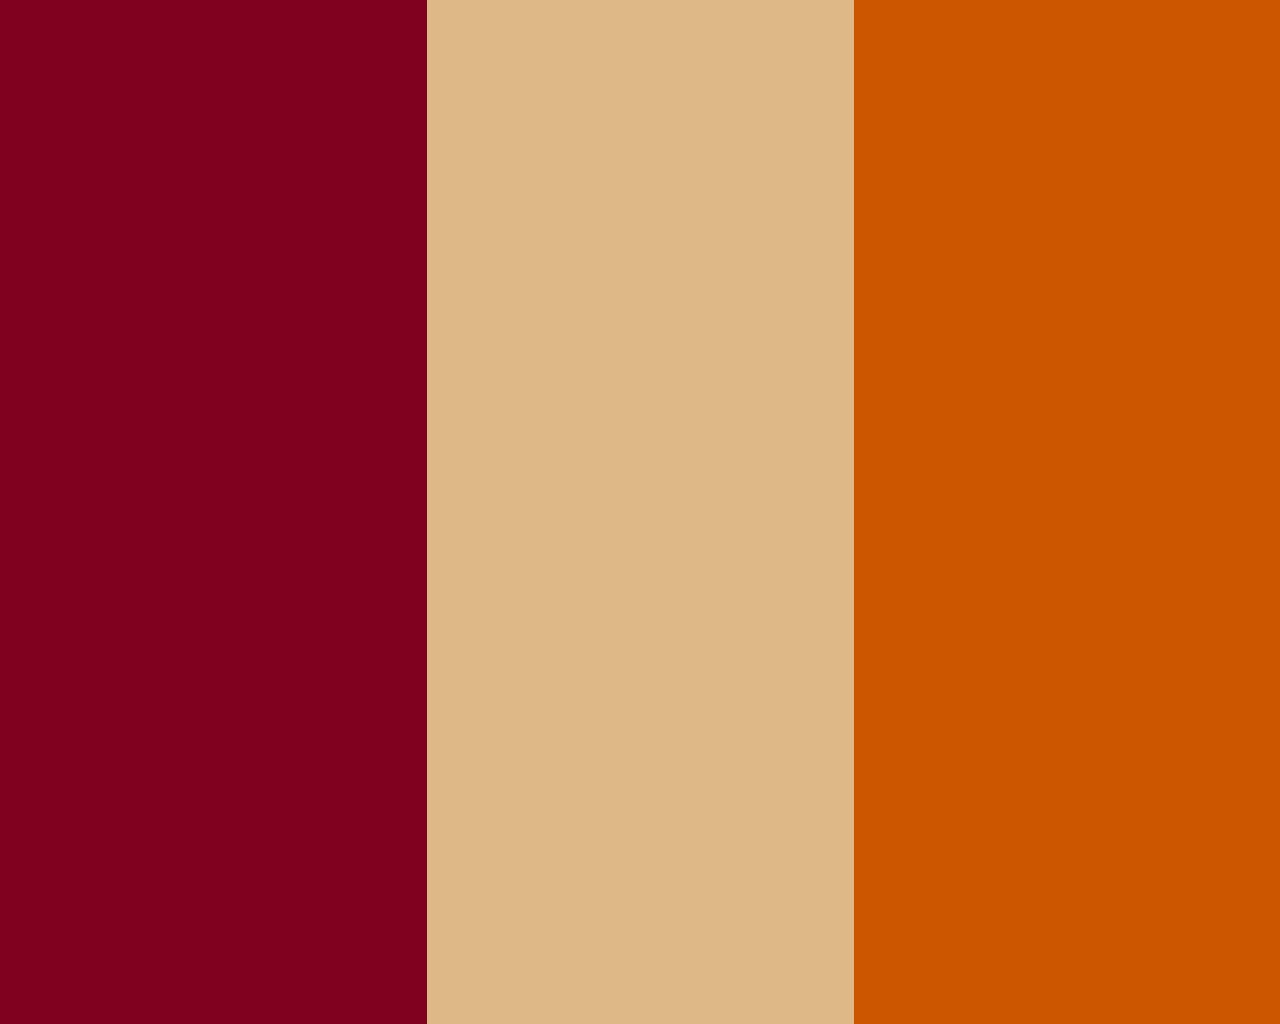 Burgundy Paint Color Top 28 Orange Html Color Hex Ff8000